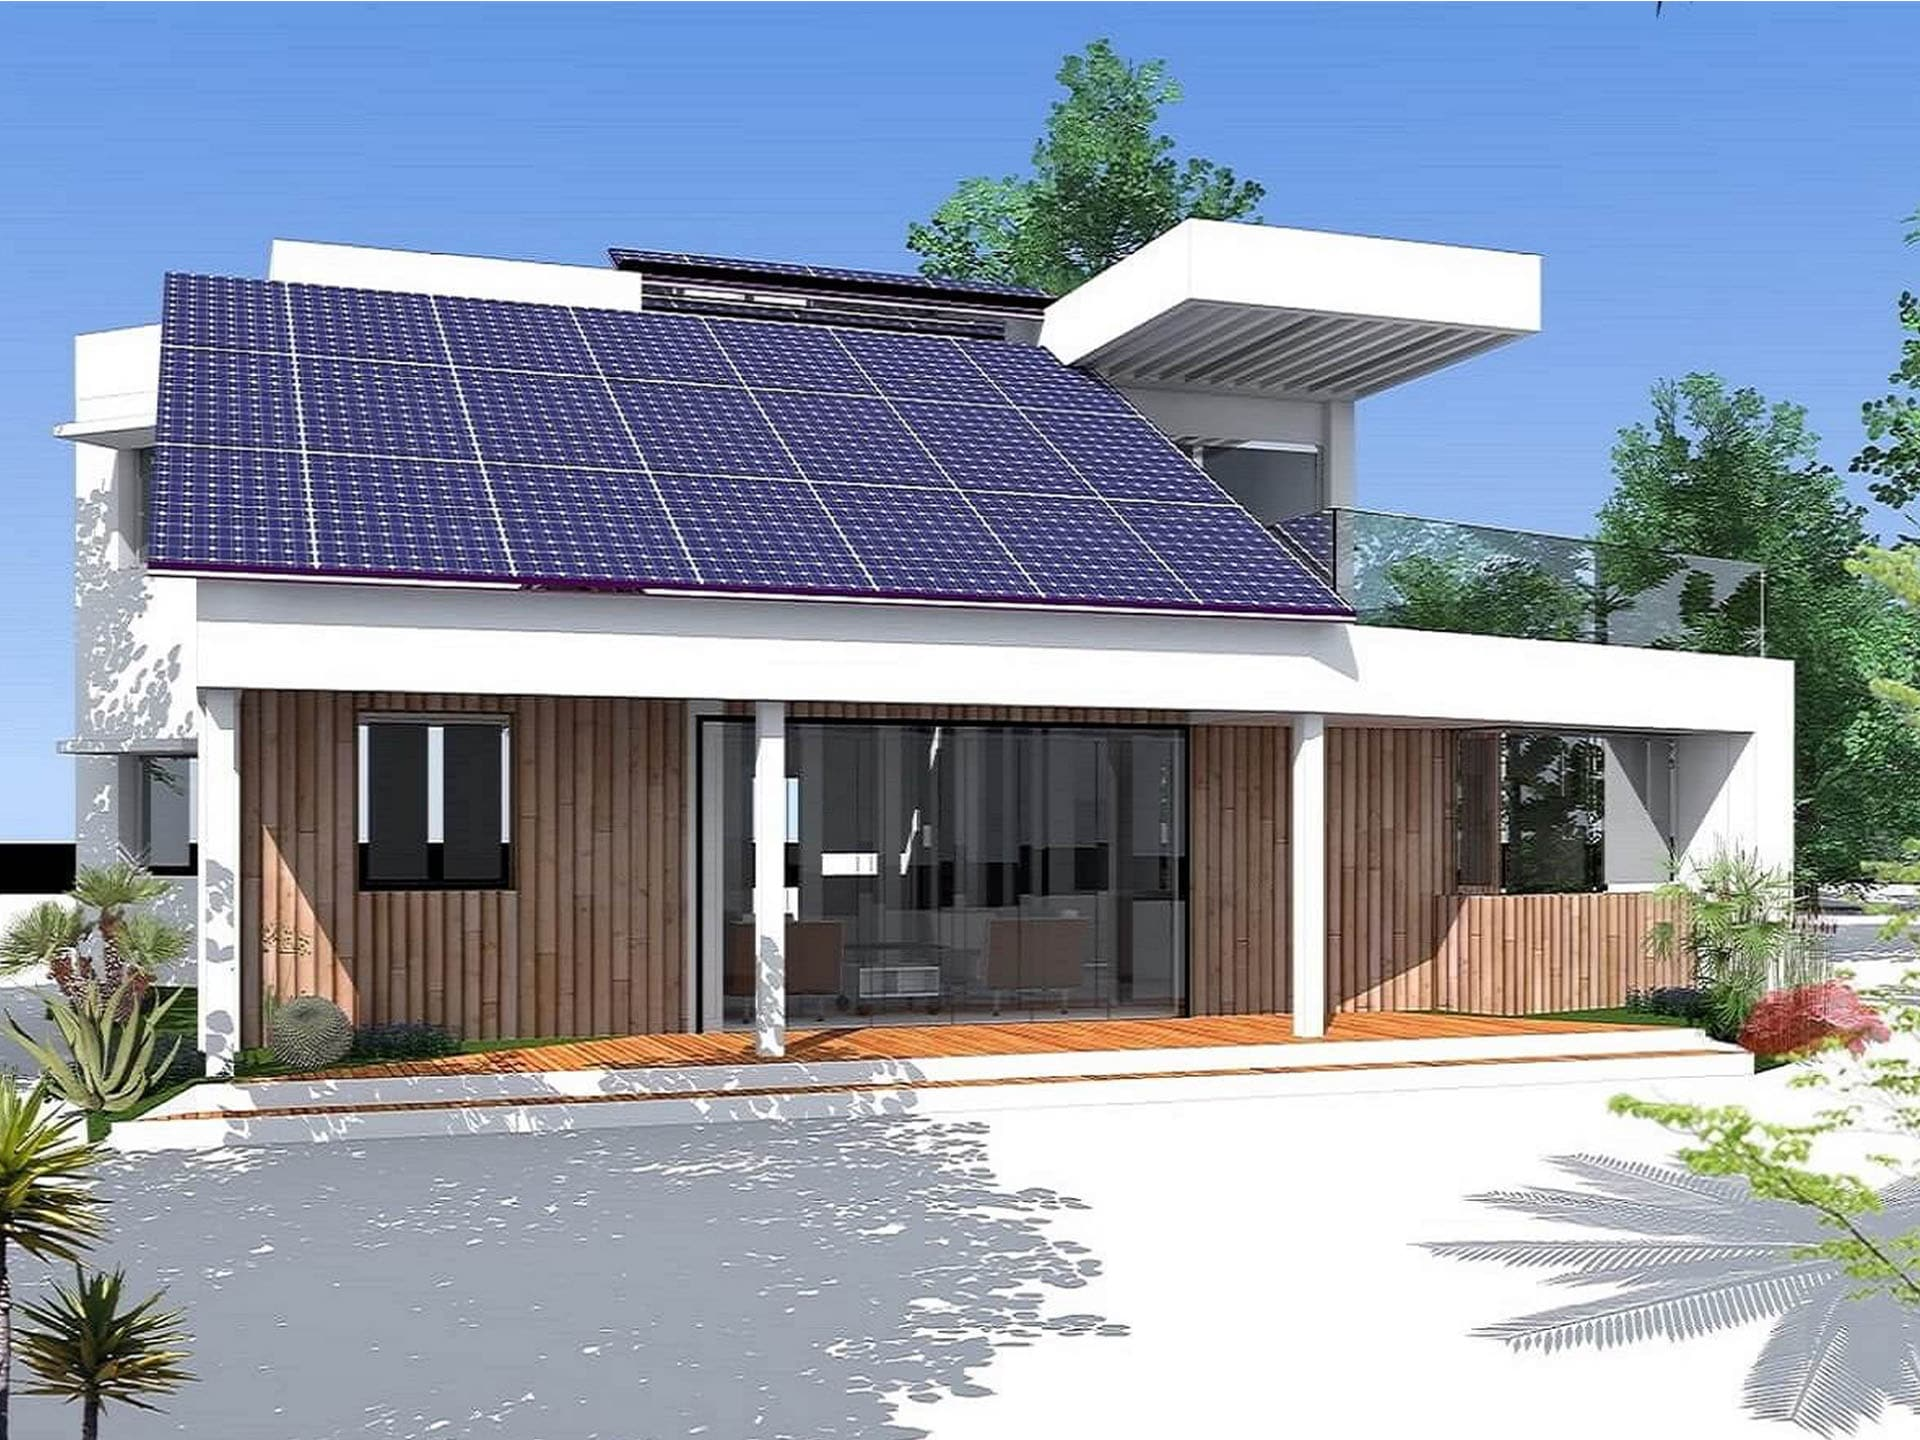 Solar Decathlon Africa 2019 : Dome Solar partner of the TDART team